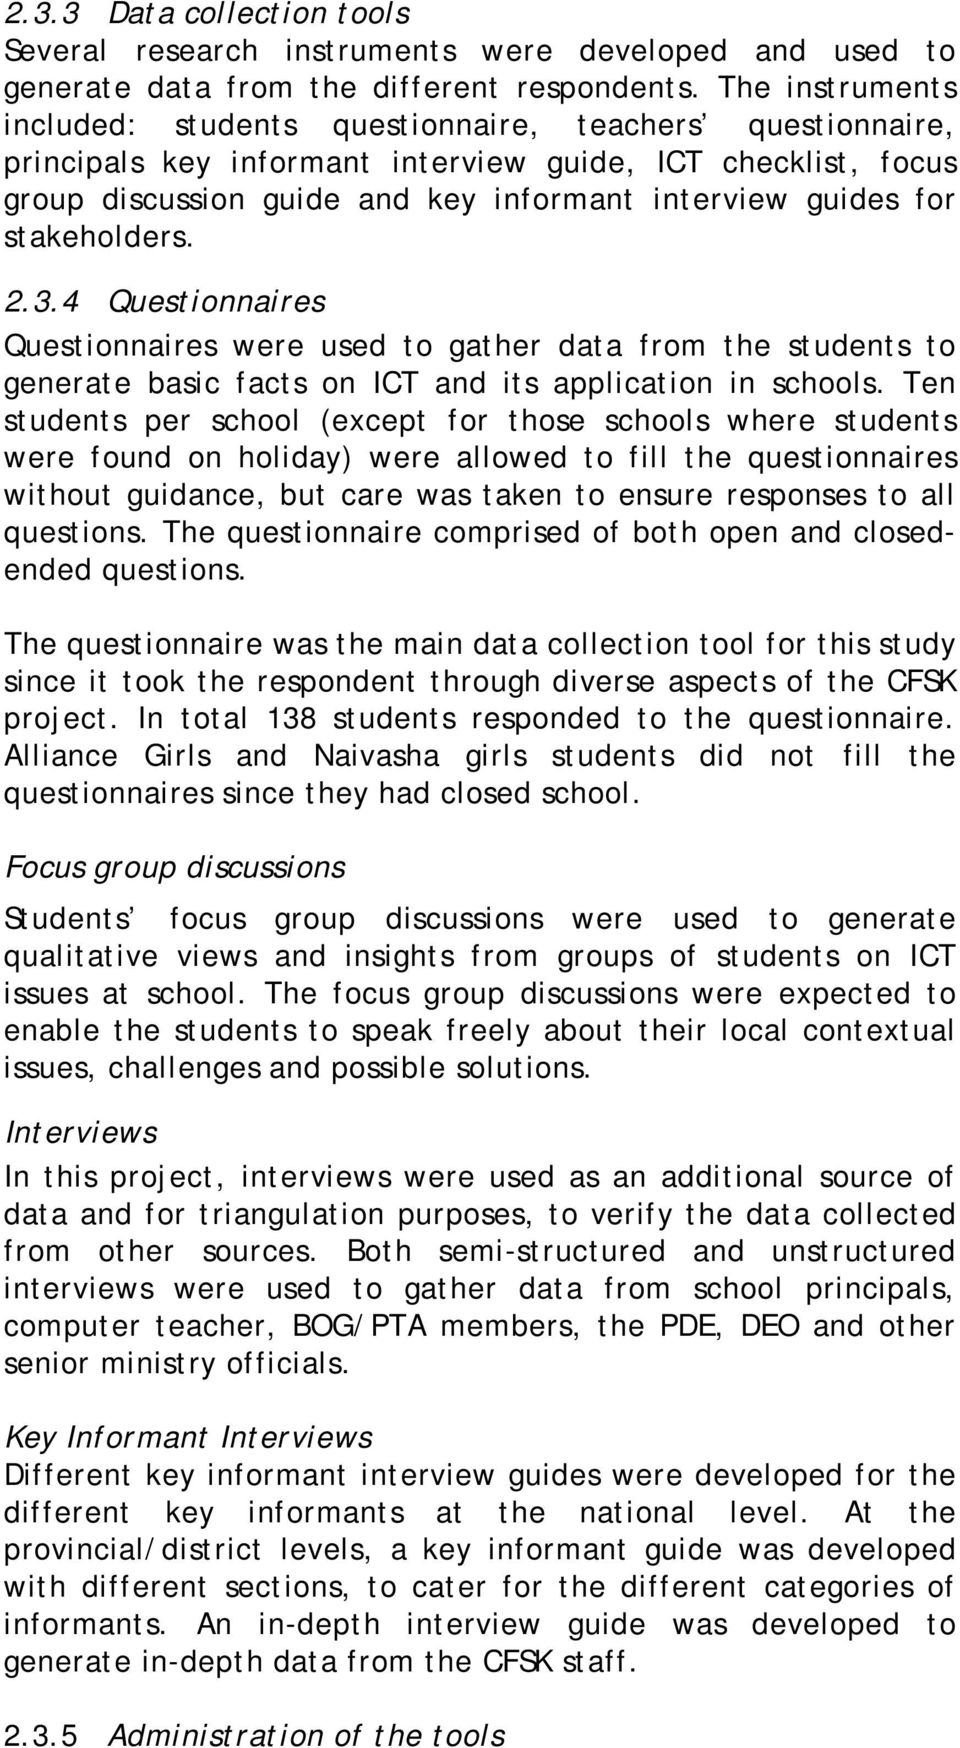 stakeholders. 2.3.4 Questionnaires Questionnaires were used to gather data from the students to generate basic facts on ICT and its application in schools.